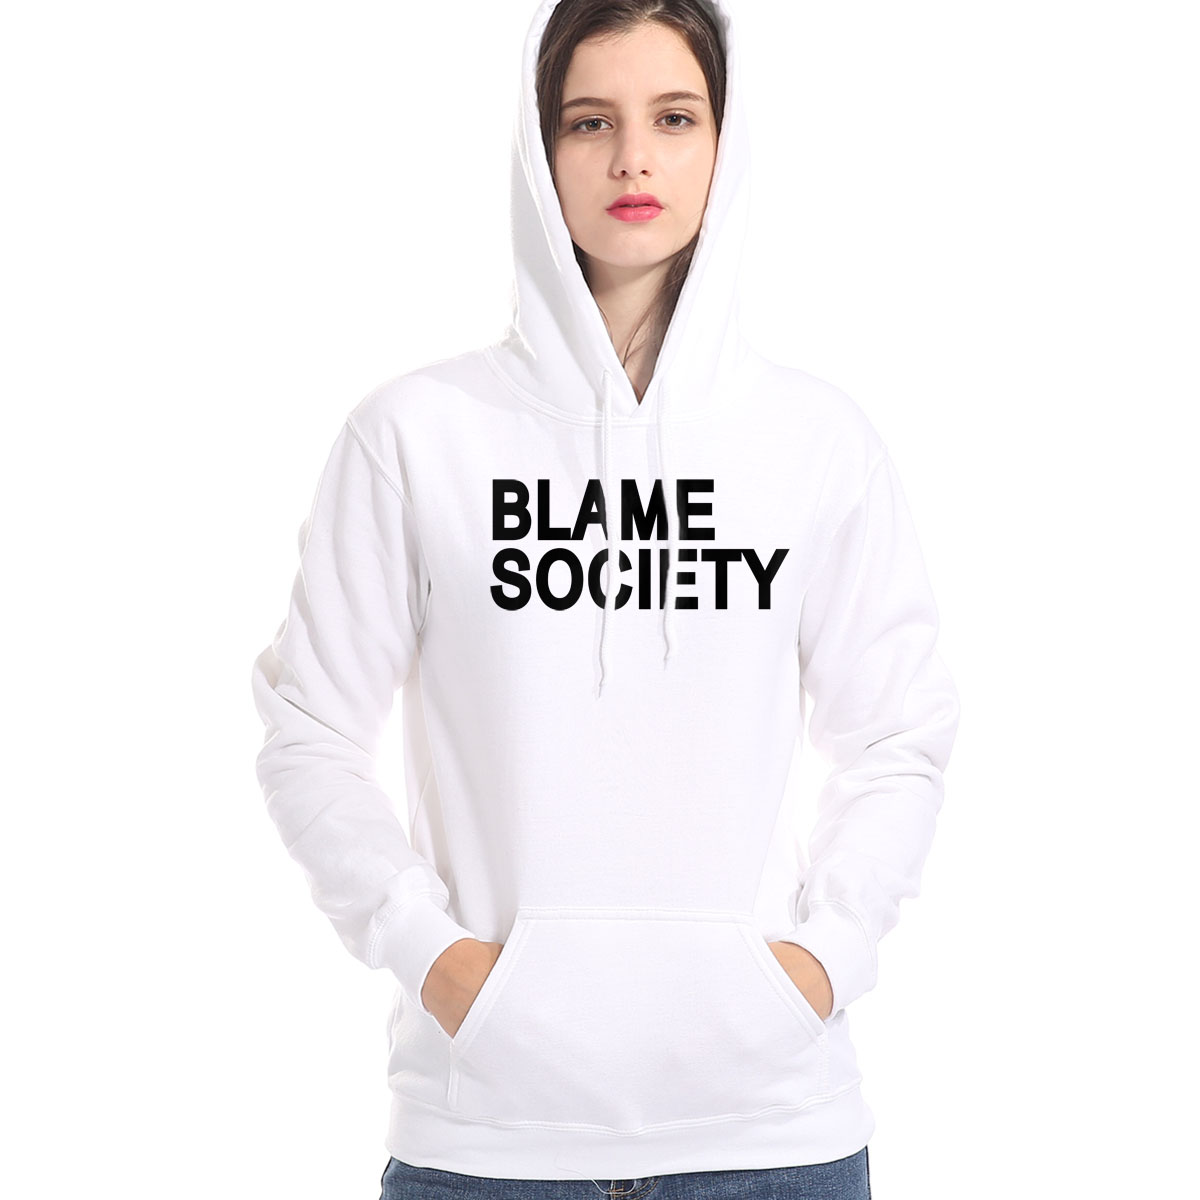 New Women's Sweatshirt Print BLAME SOCIETY Casual Hoodies 2019 Winter Warm Hot Female Pullover Fleece Hoodies Harajuku Tracksuit